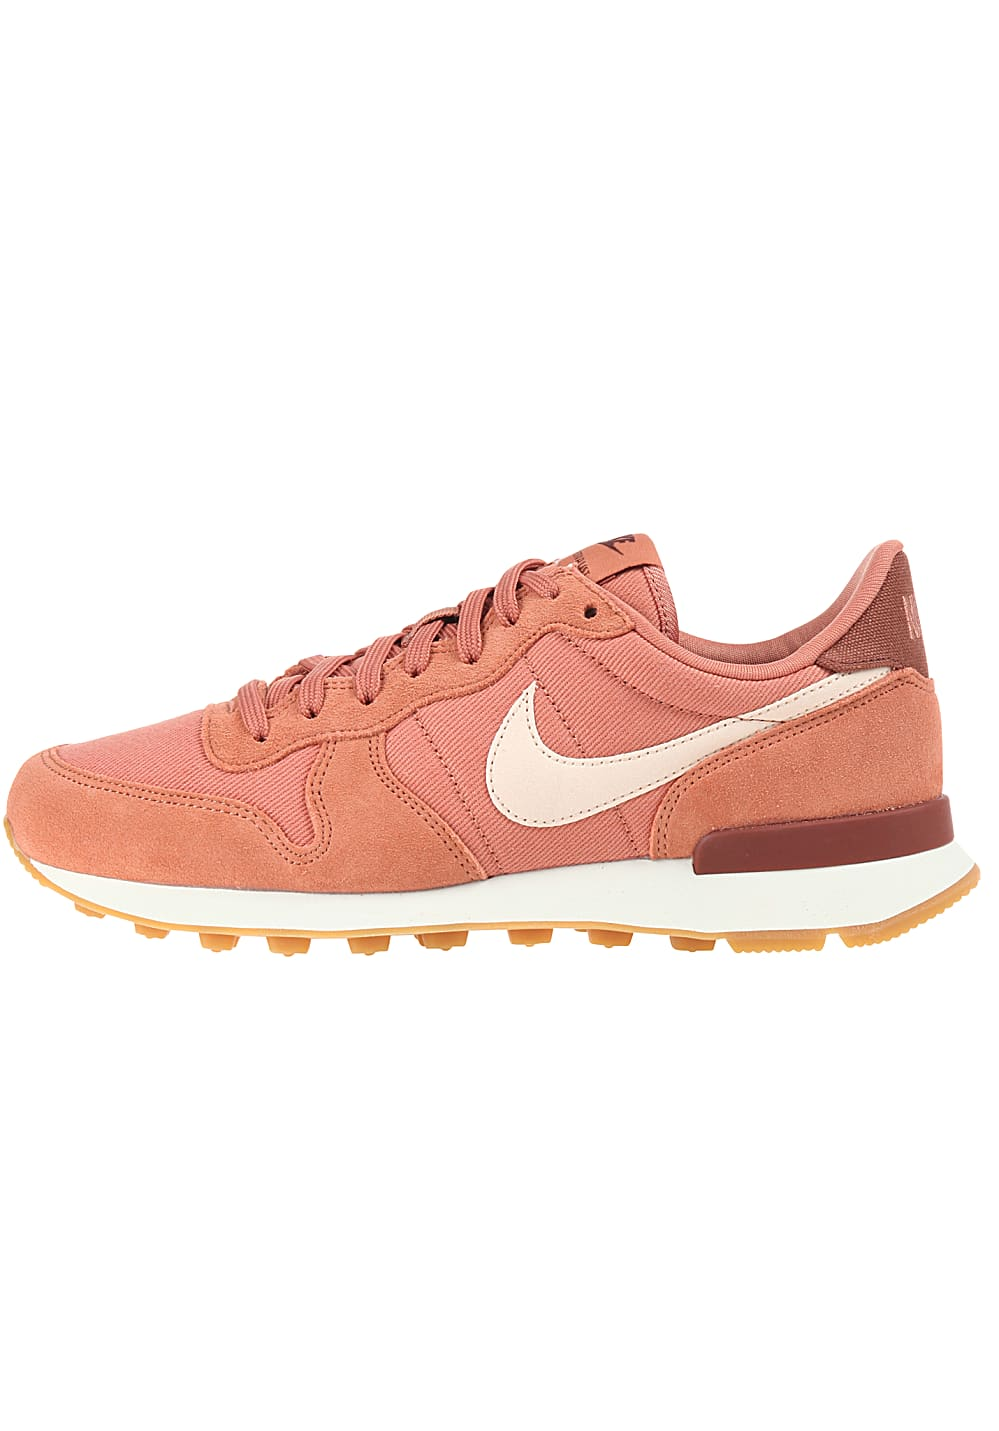 nike internationalist femme couleur blush